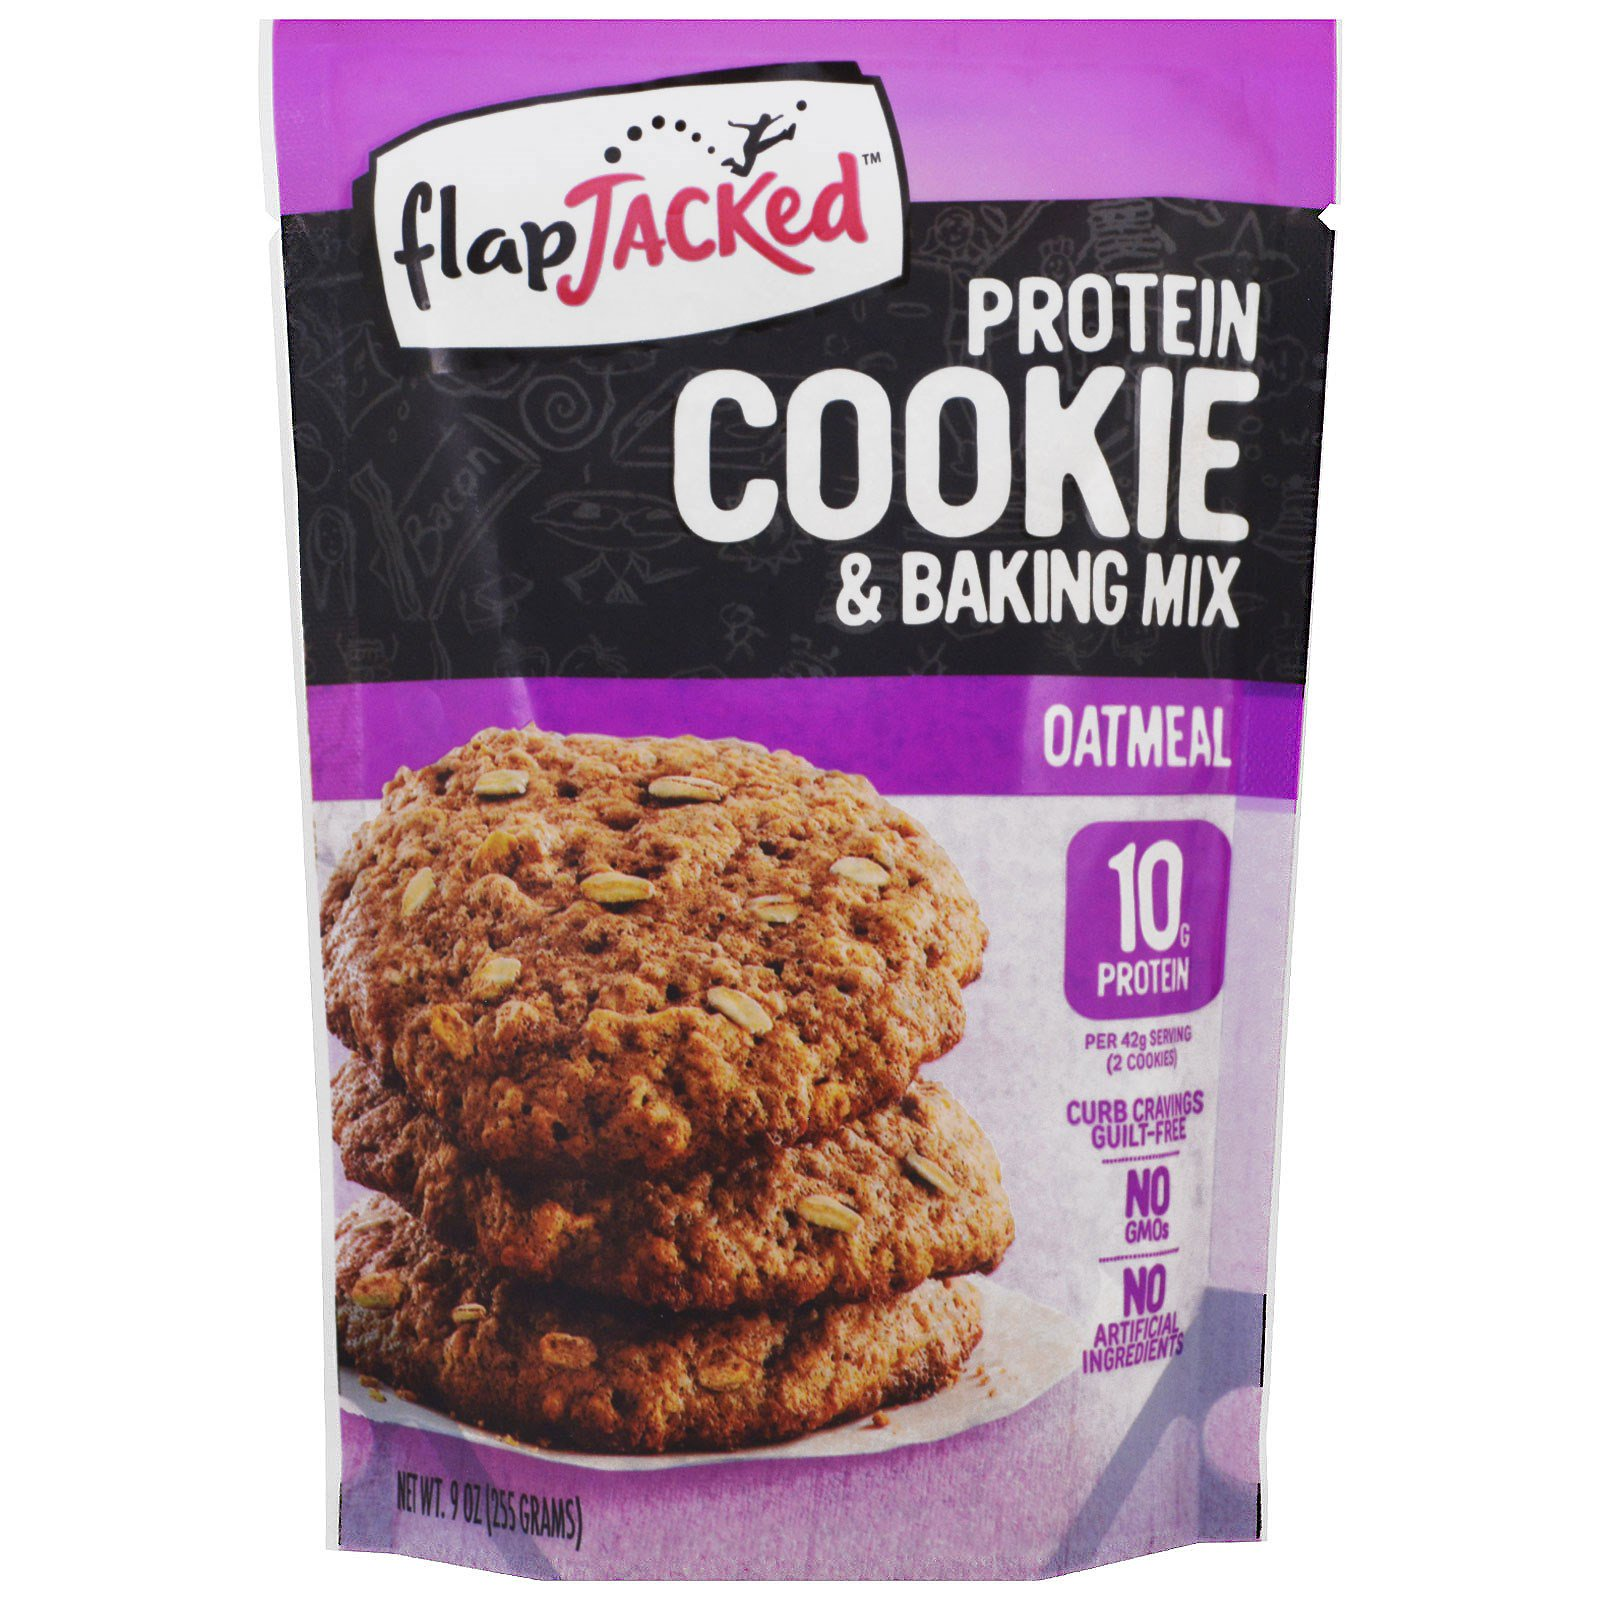 FlapJacked, Protein Cookie and Baking Mix, Oatmeal, 9 oz (255 g)